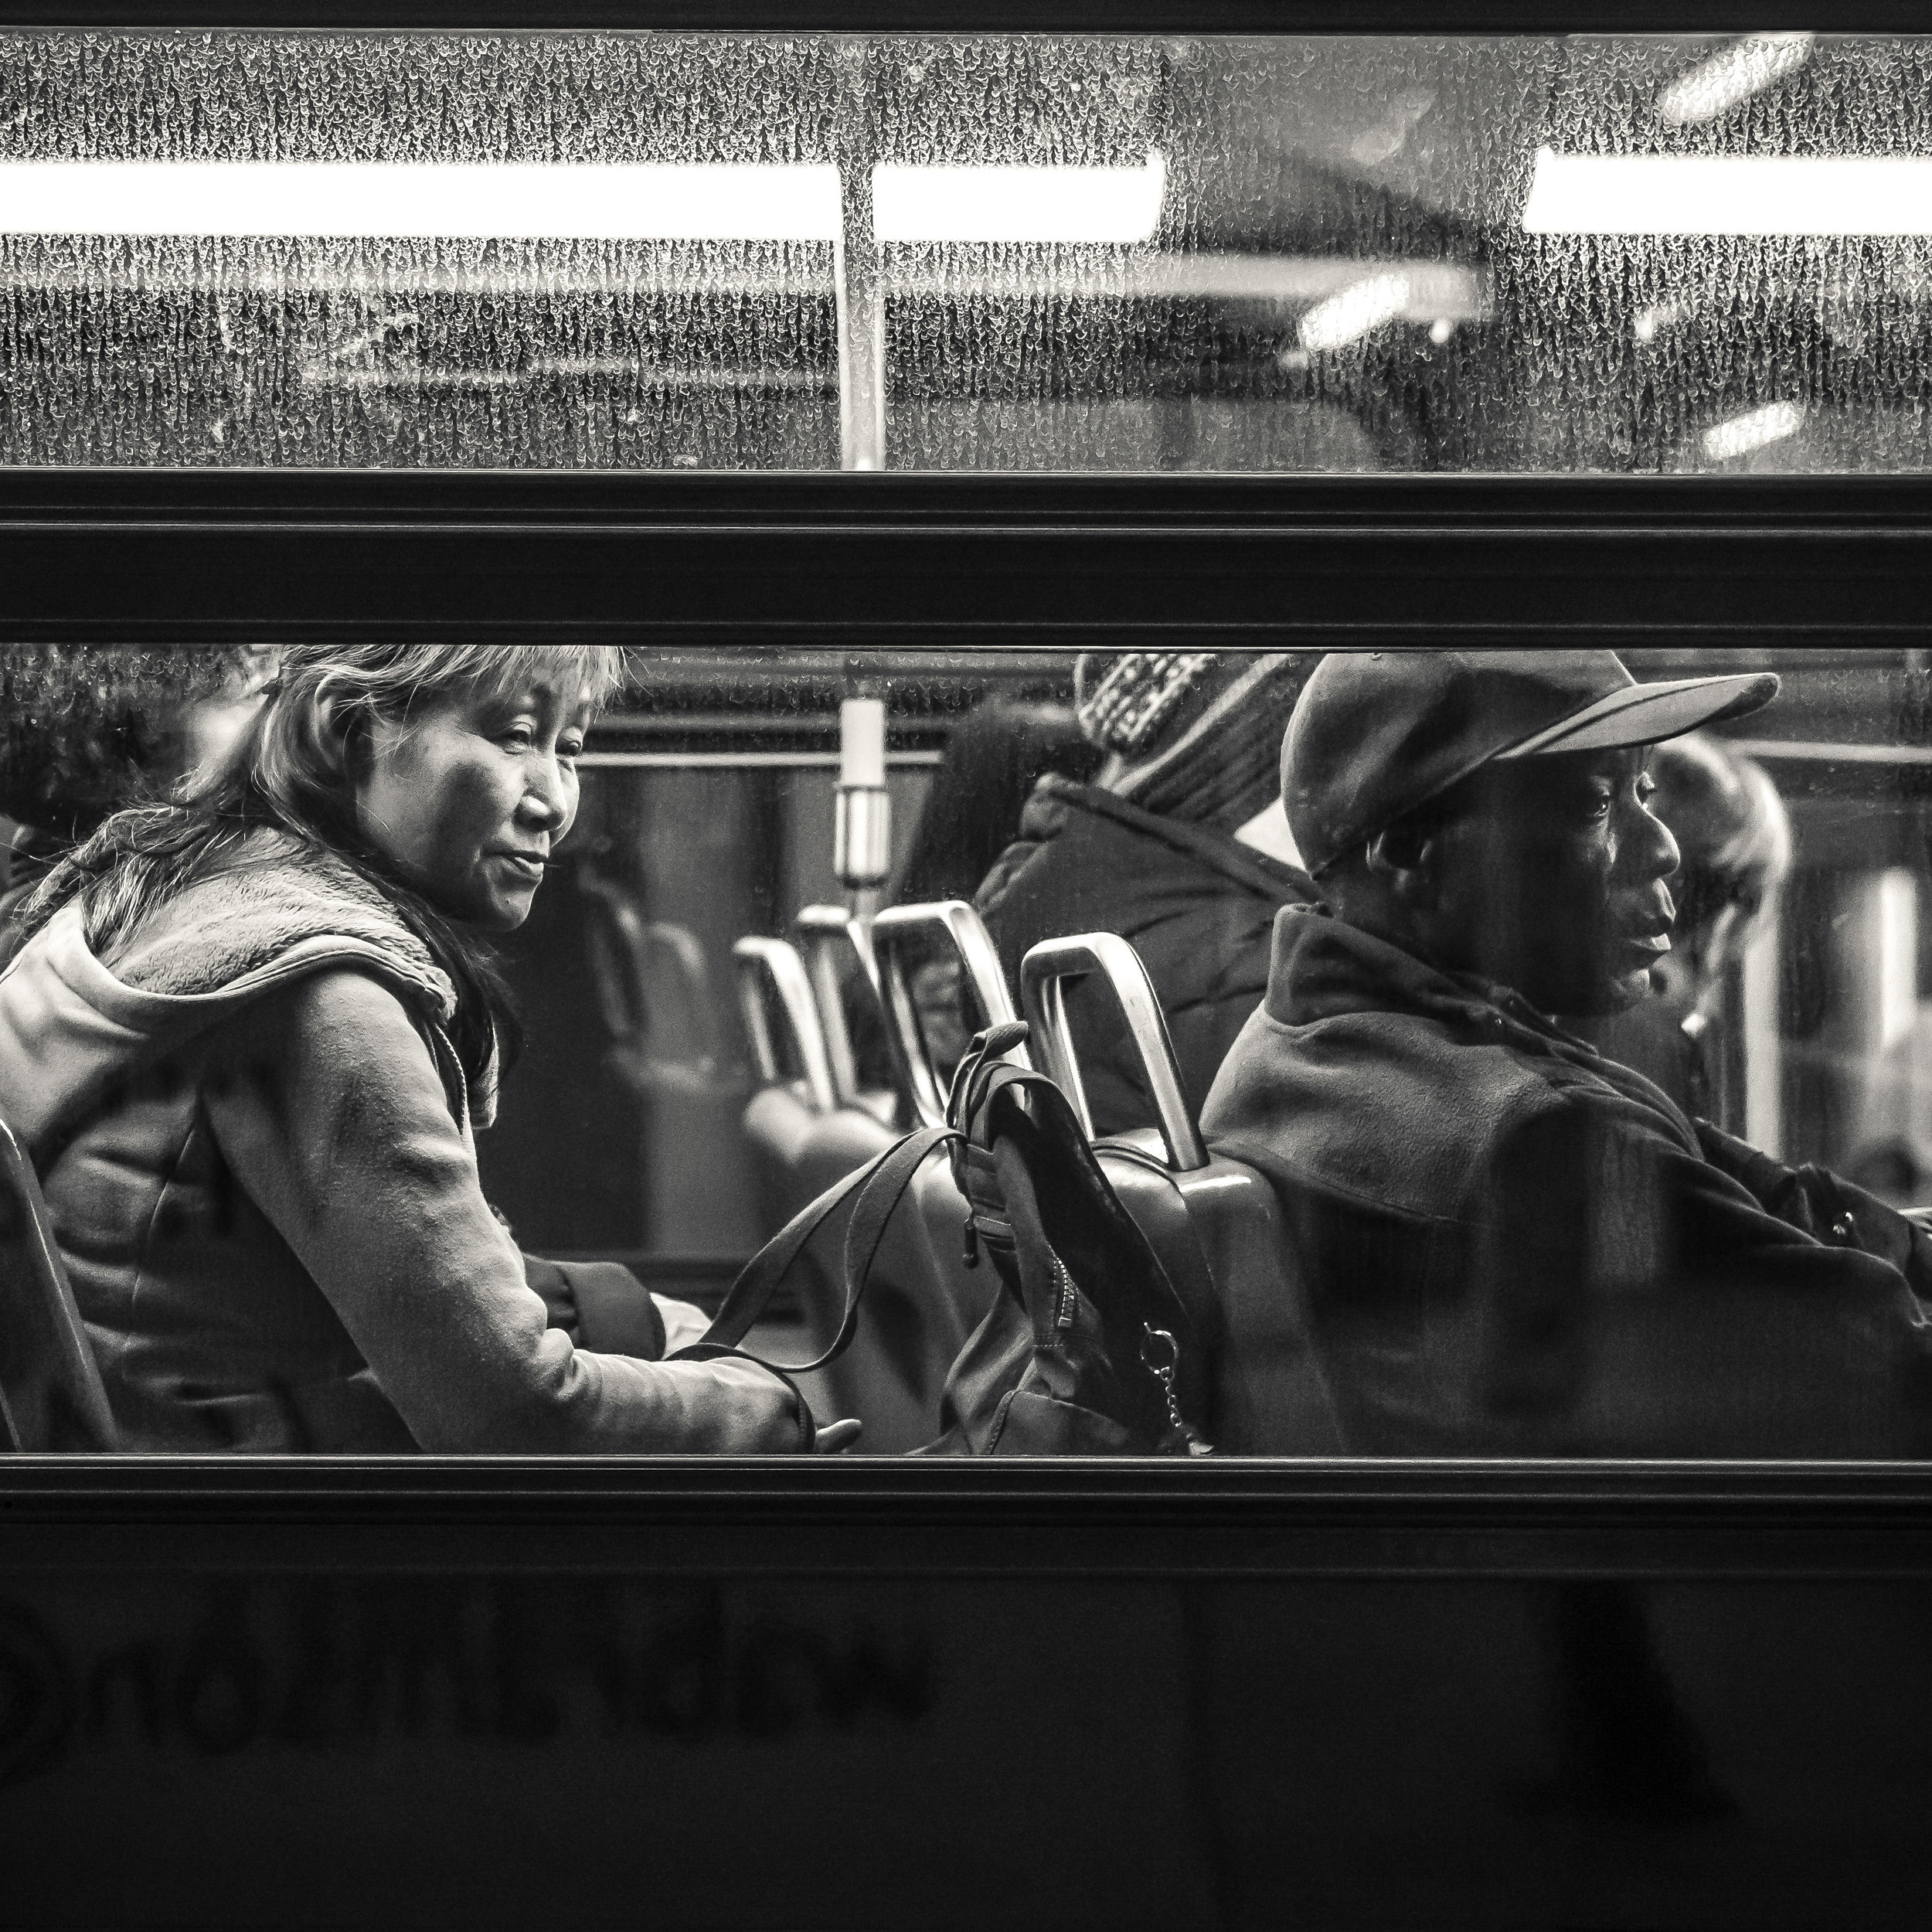 SHAMMARA MCKAY - Shammara's work has been featured in the Don't Take Pictures online gallery, Street Photography Magazine and numerous Instagram feature accounts.Follow her on Instagram @sheshootsny.